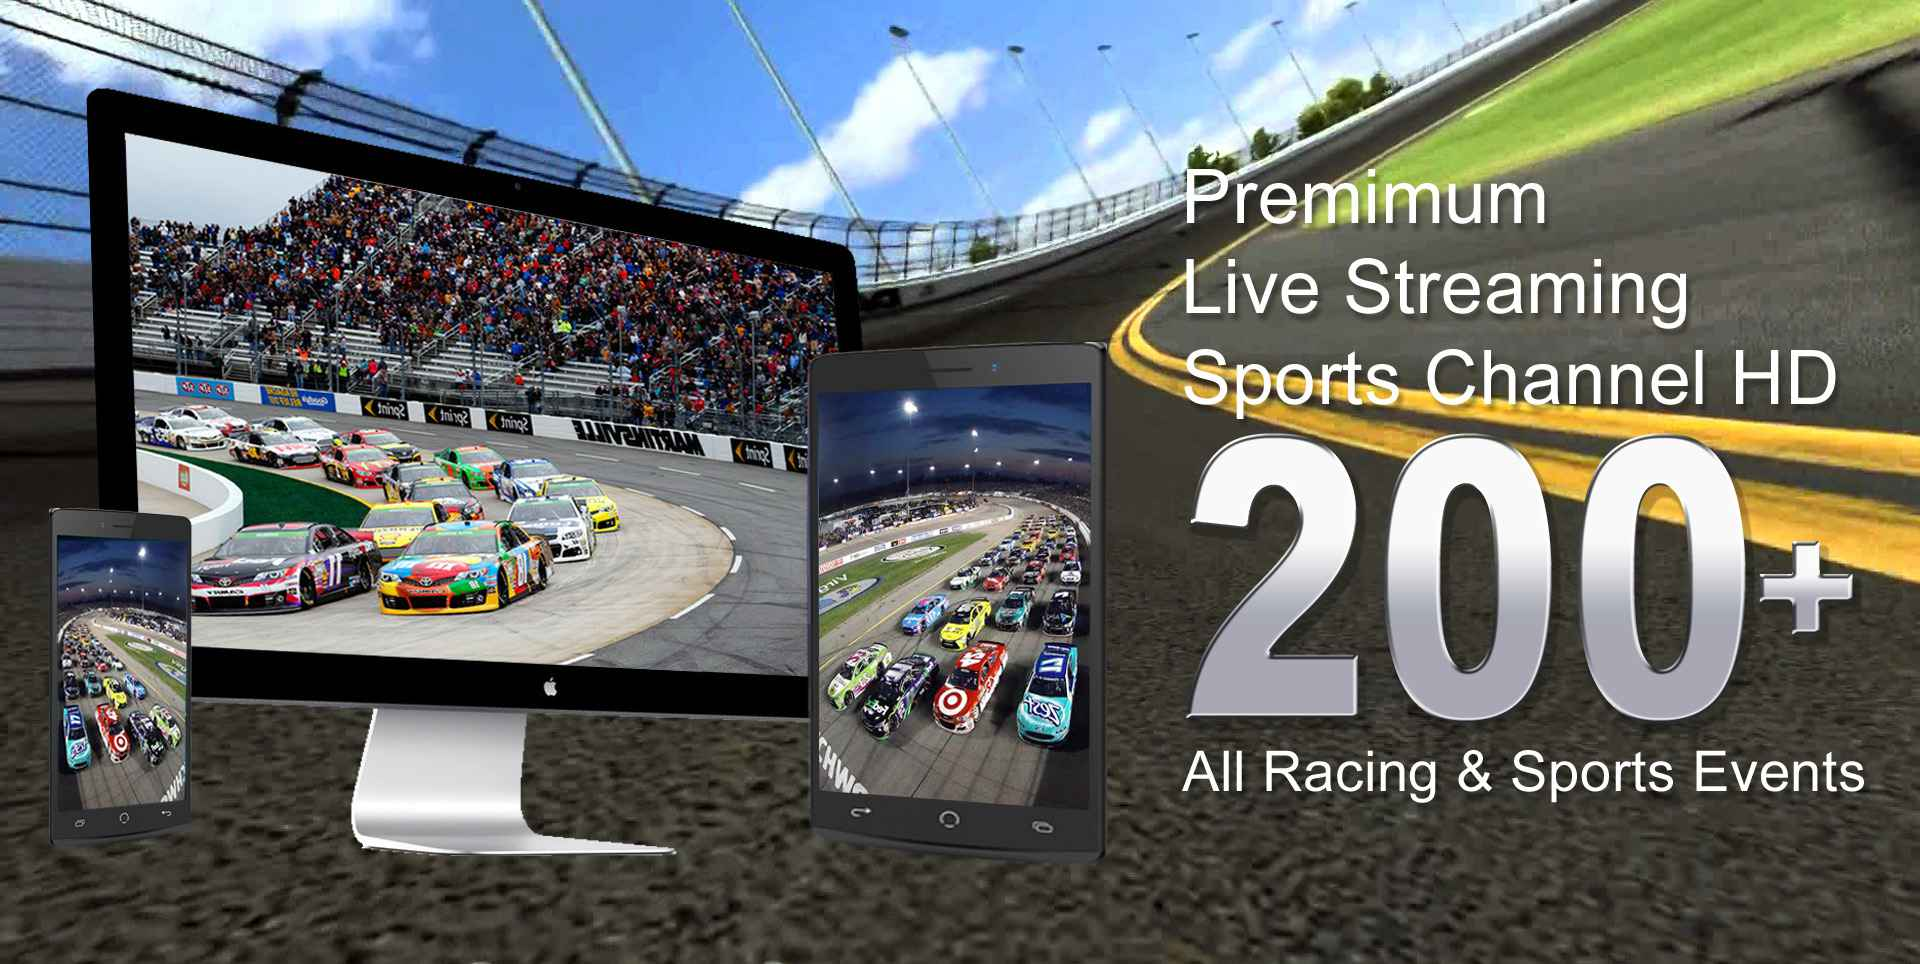 How and Where to Watch NASCAR Live in UK and Europe